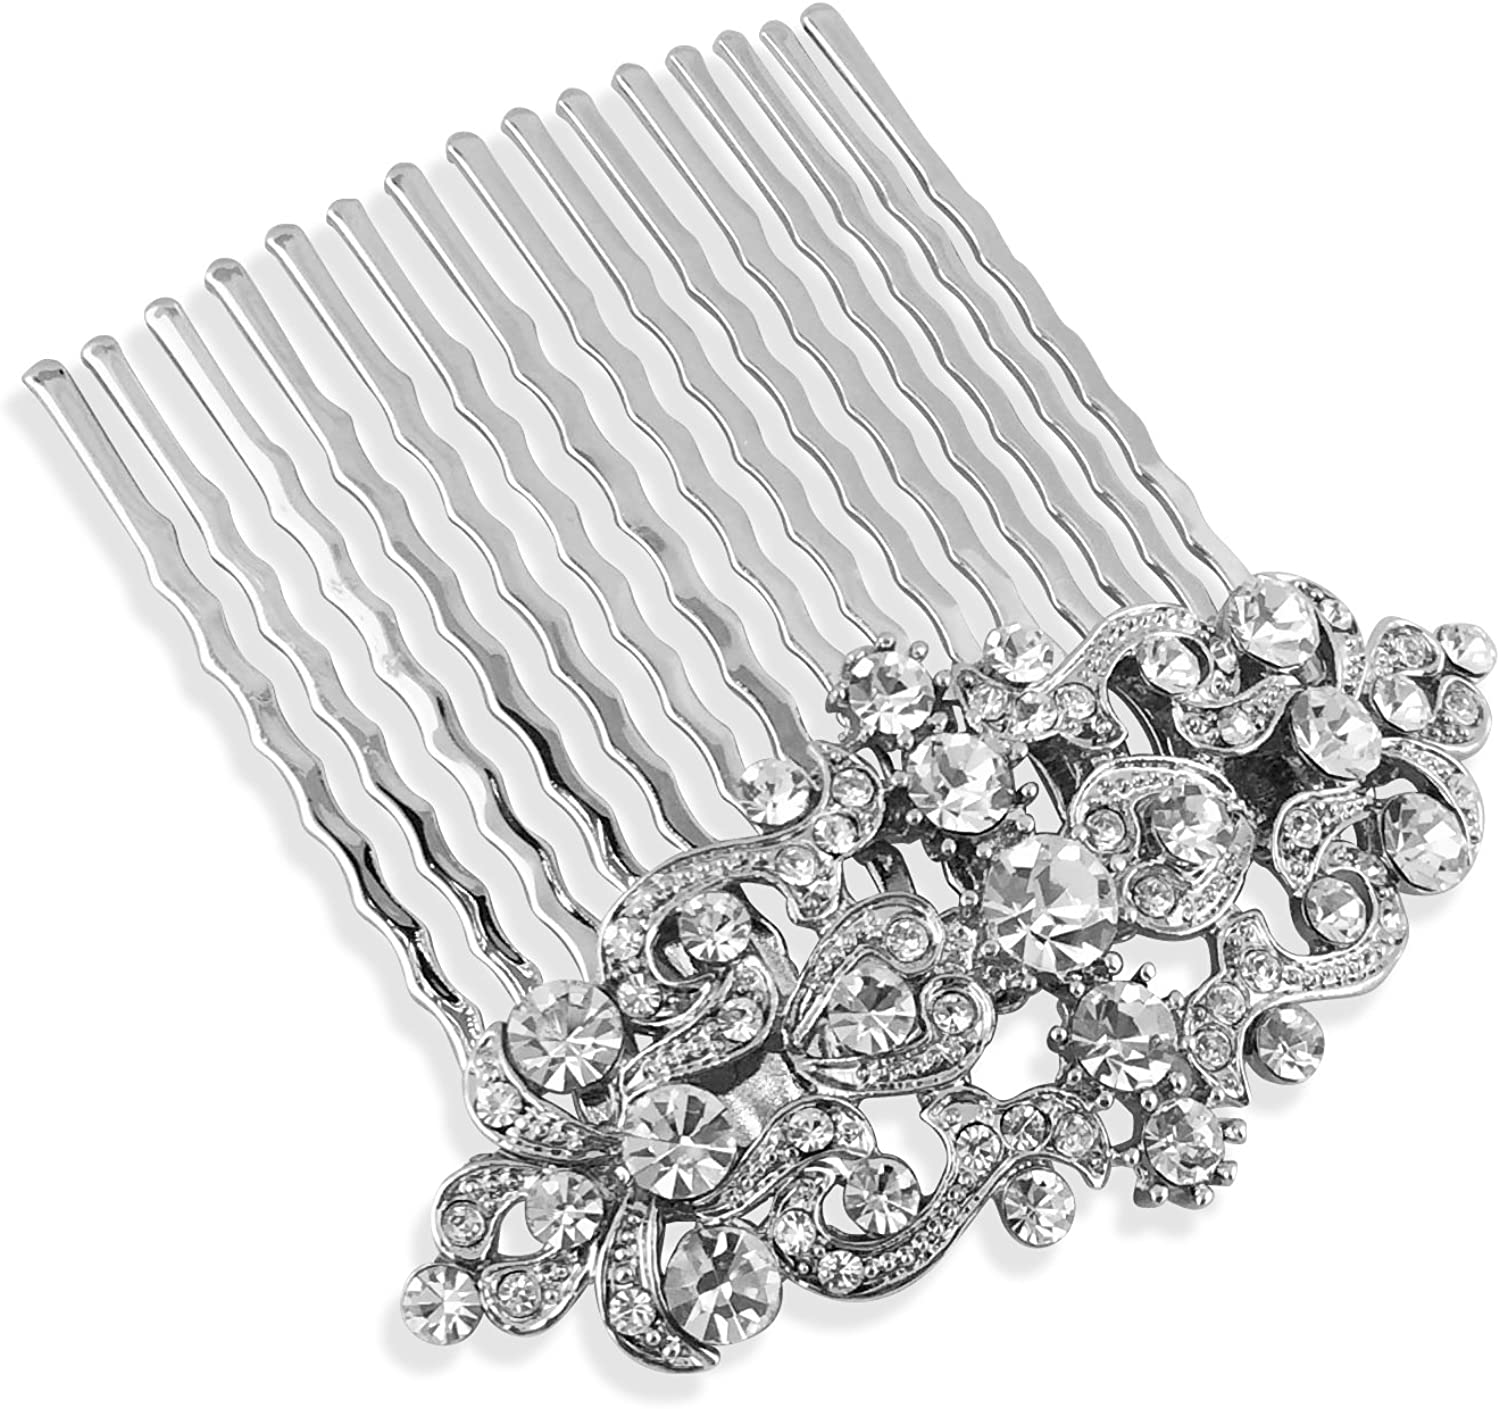 Bridal Petite Max 45% Year-end annual account OFF Vintage Crystal Scrolls Comb